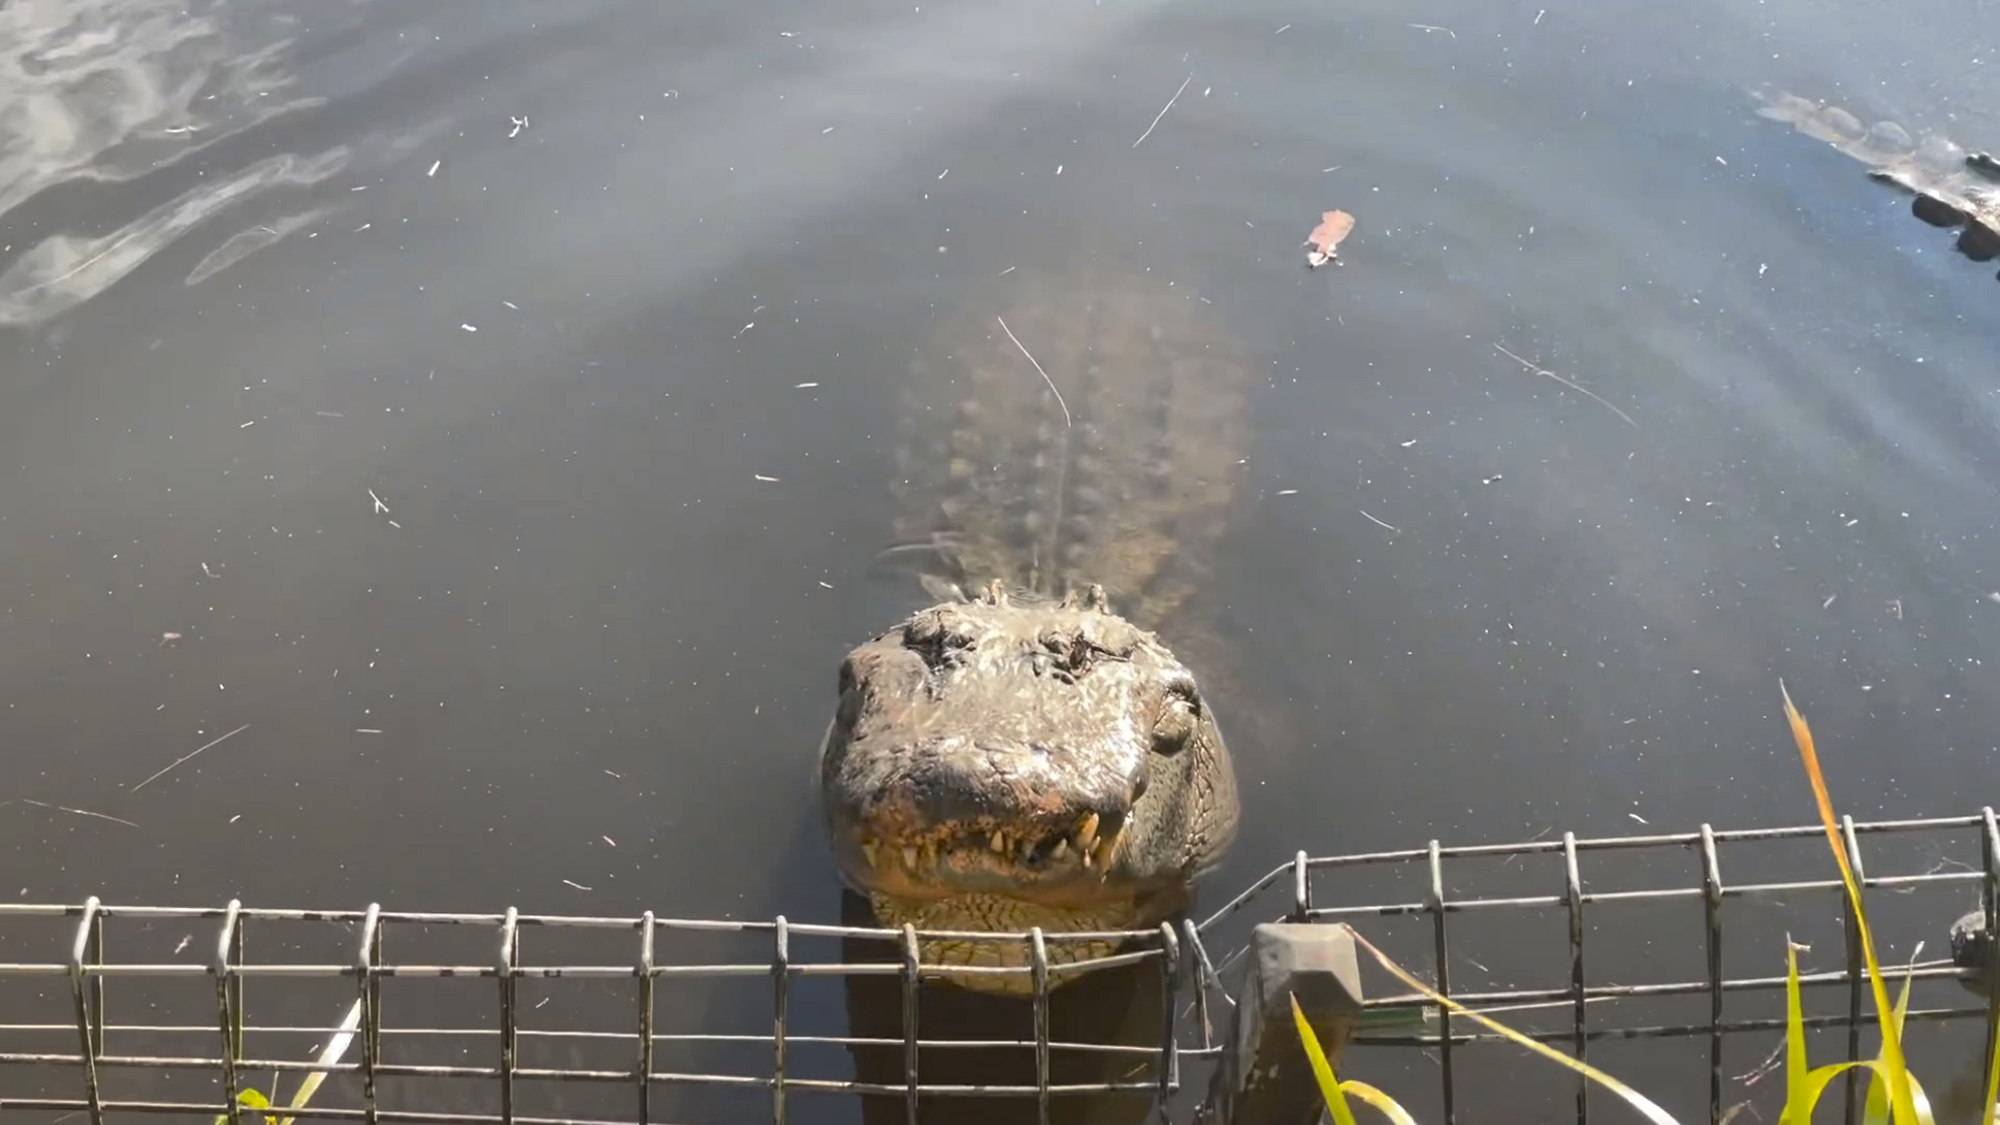 VIDEO: Terrifying Mating Calls Of 1,000-Pound Male Alligators